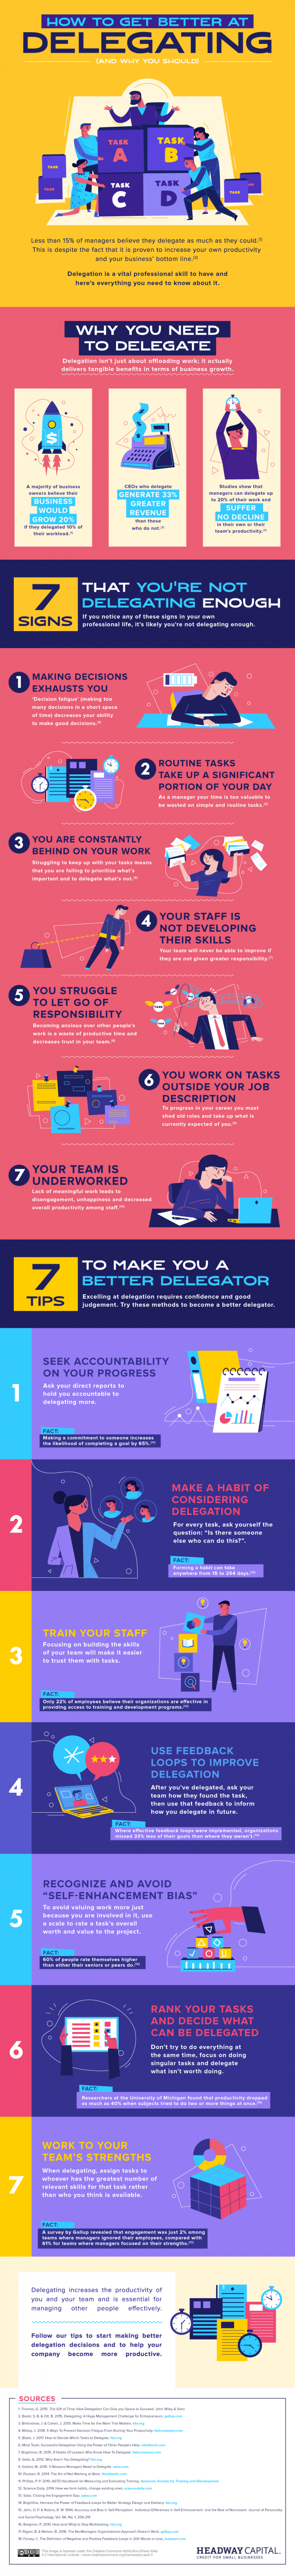 How You Can Get Better at Delegating